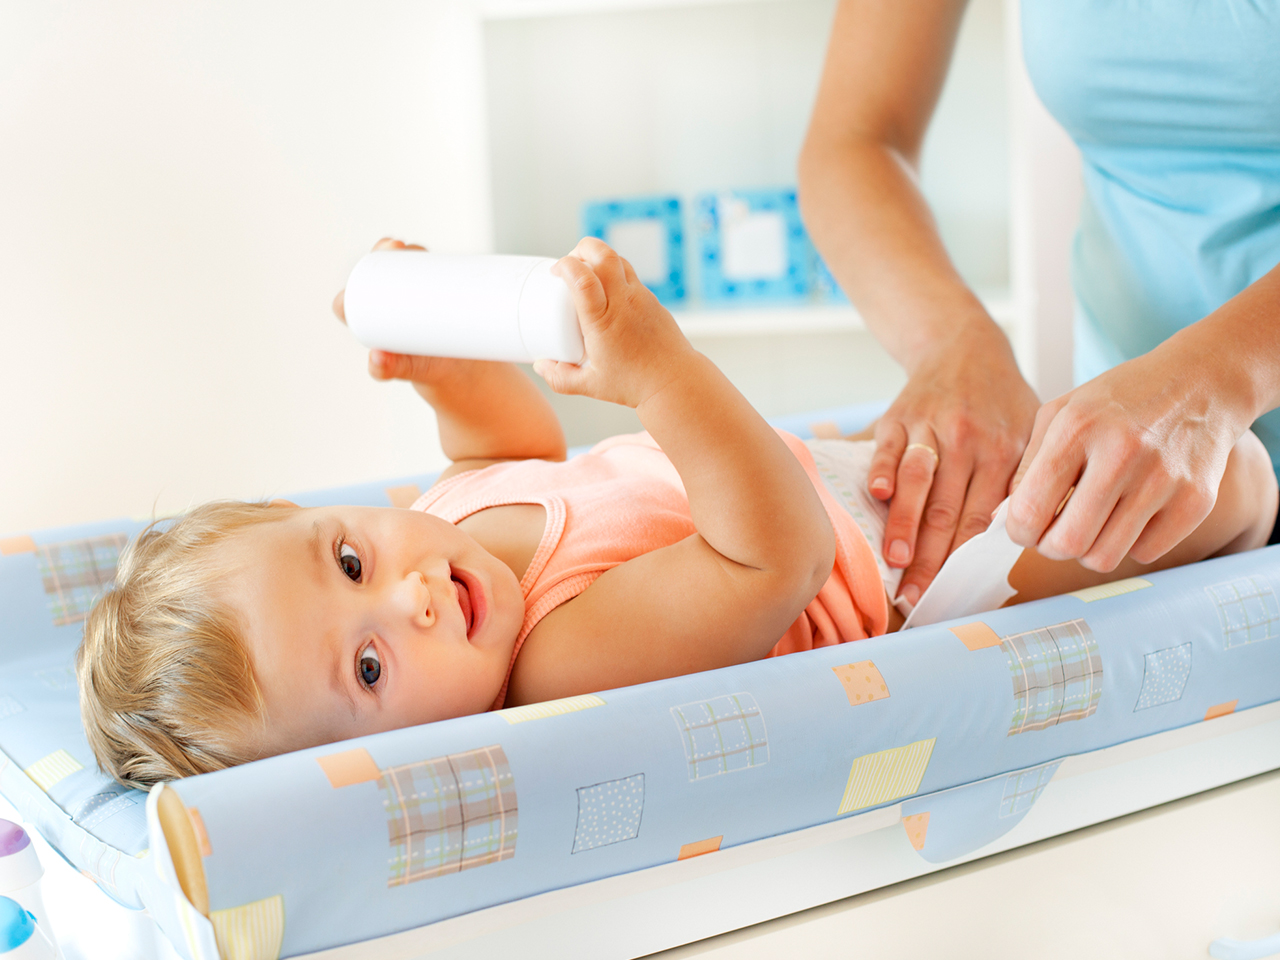 13 tips for cleaning baby poop – today's parent